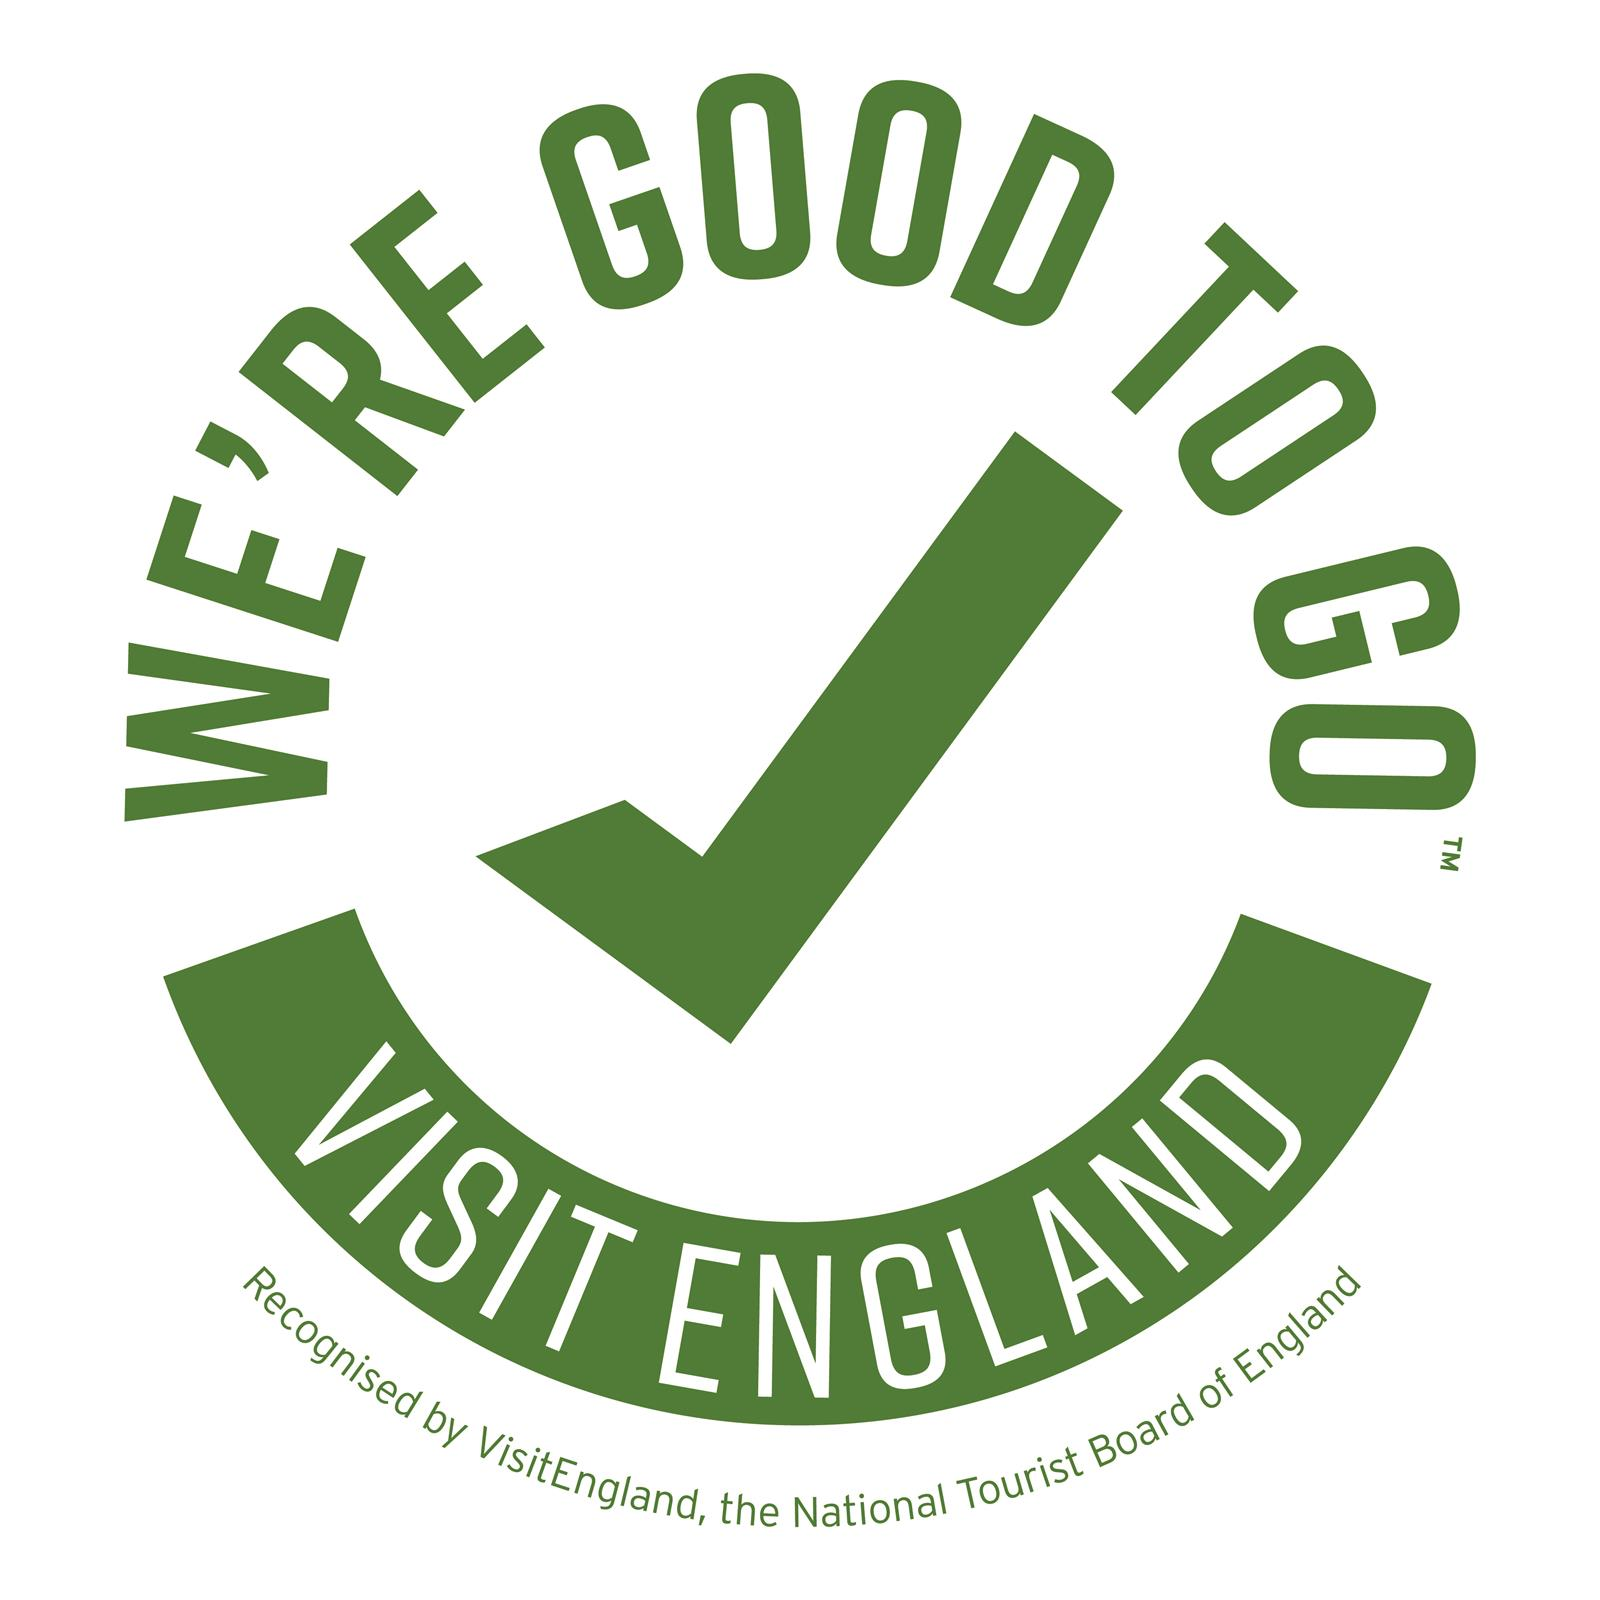 We're Good to Go - Covid-19 accreditation scheme